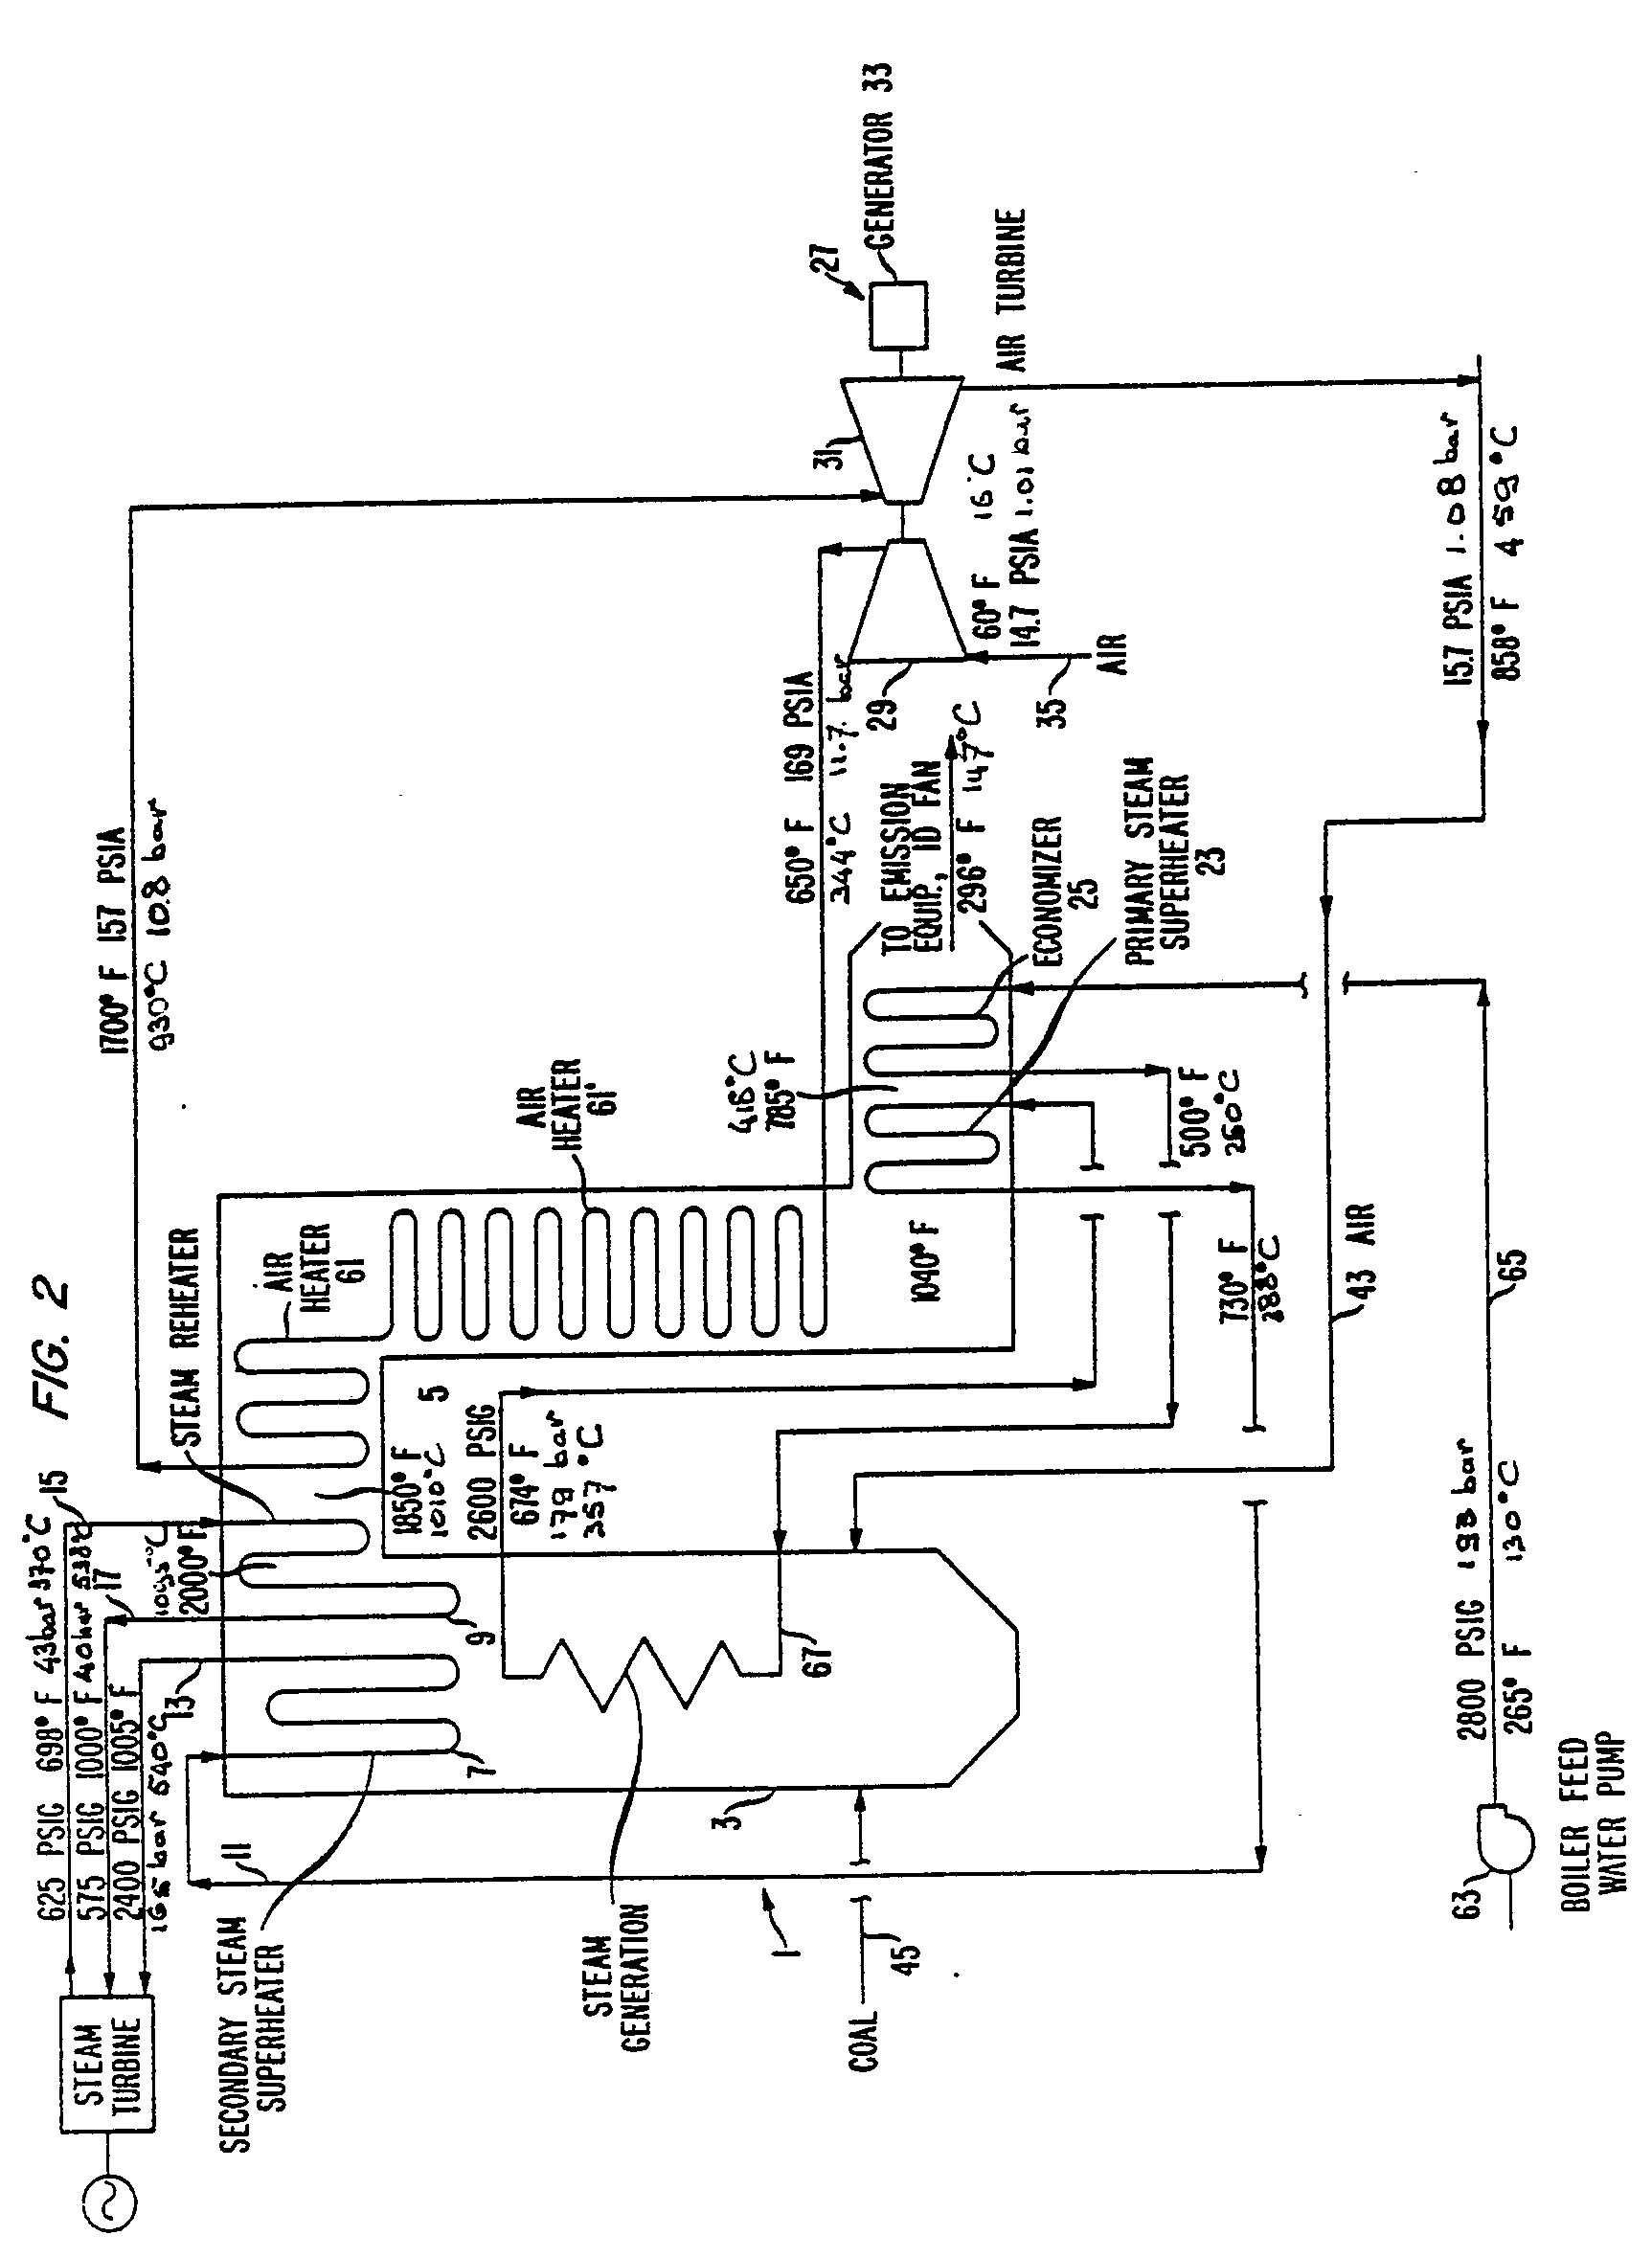 2002 oldsmobile intrigue alternator diagram